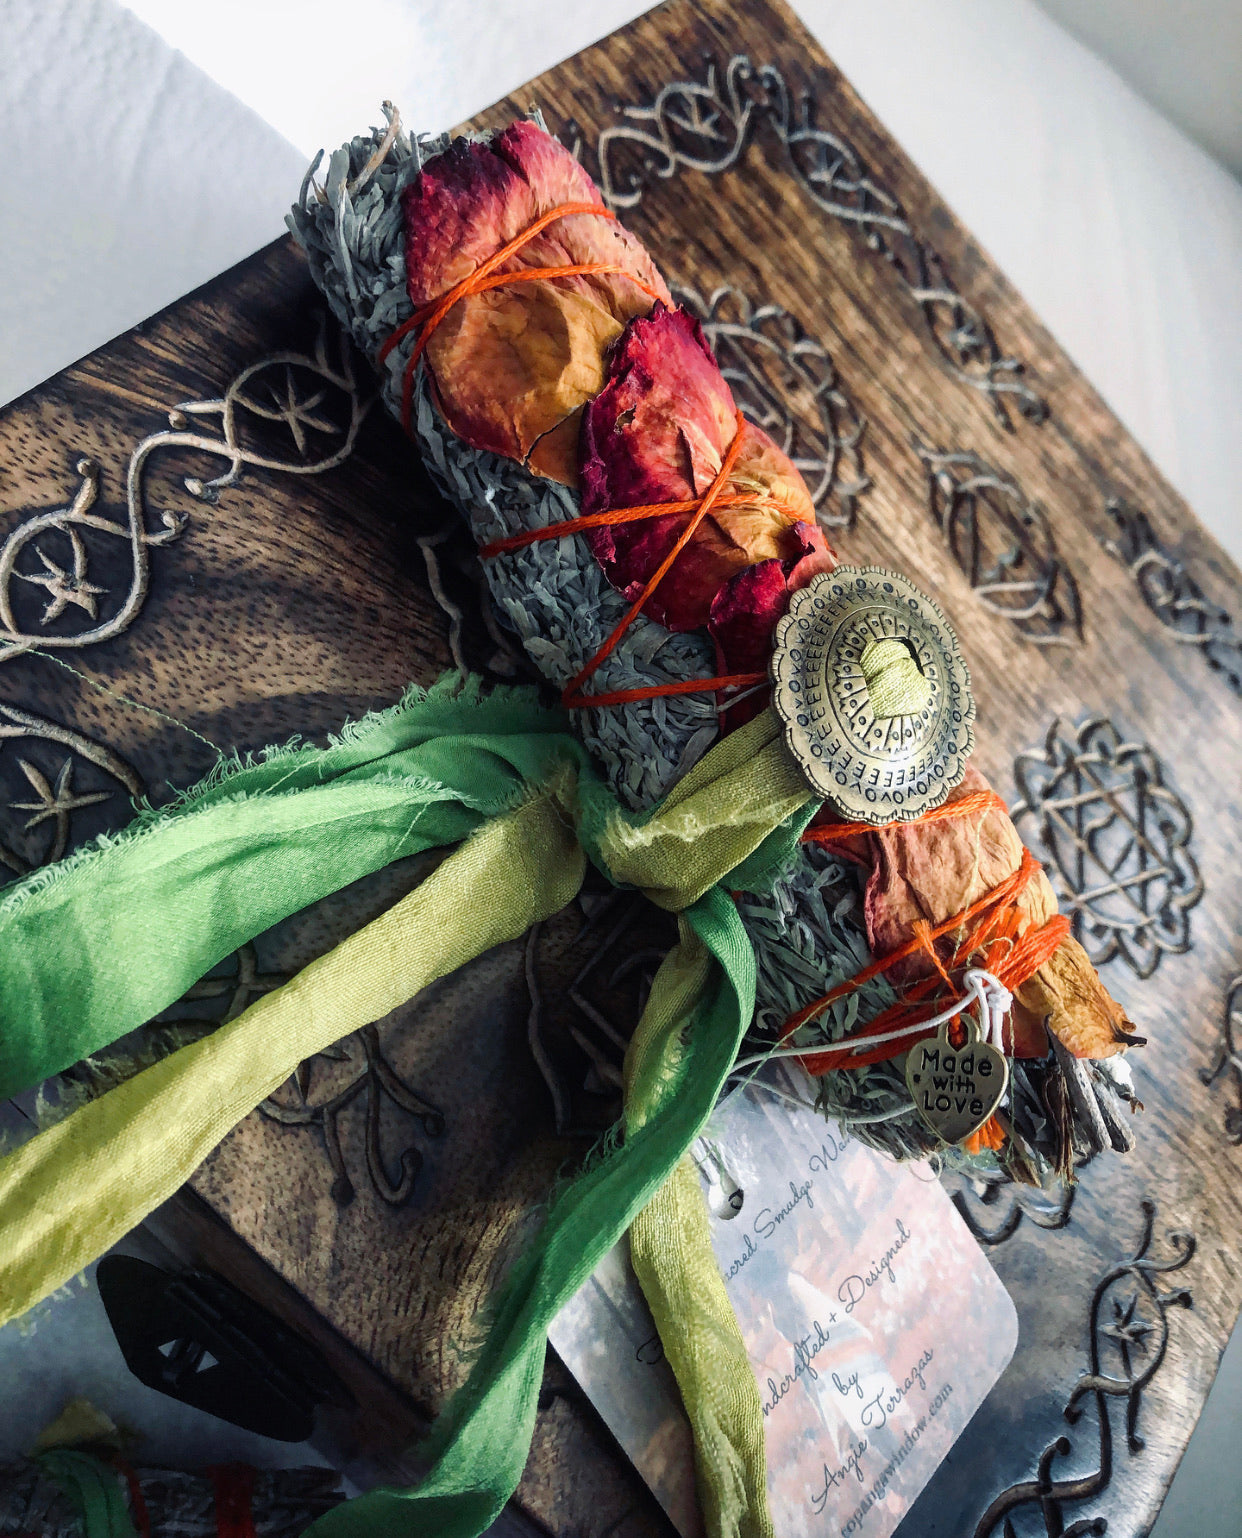 SMUDGE KIT GIFT BOX + Set of 3 Sacred Floral Sage Sticks